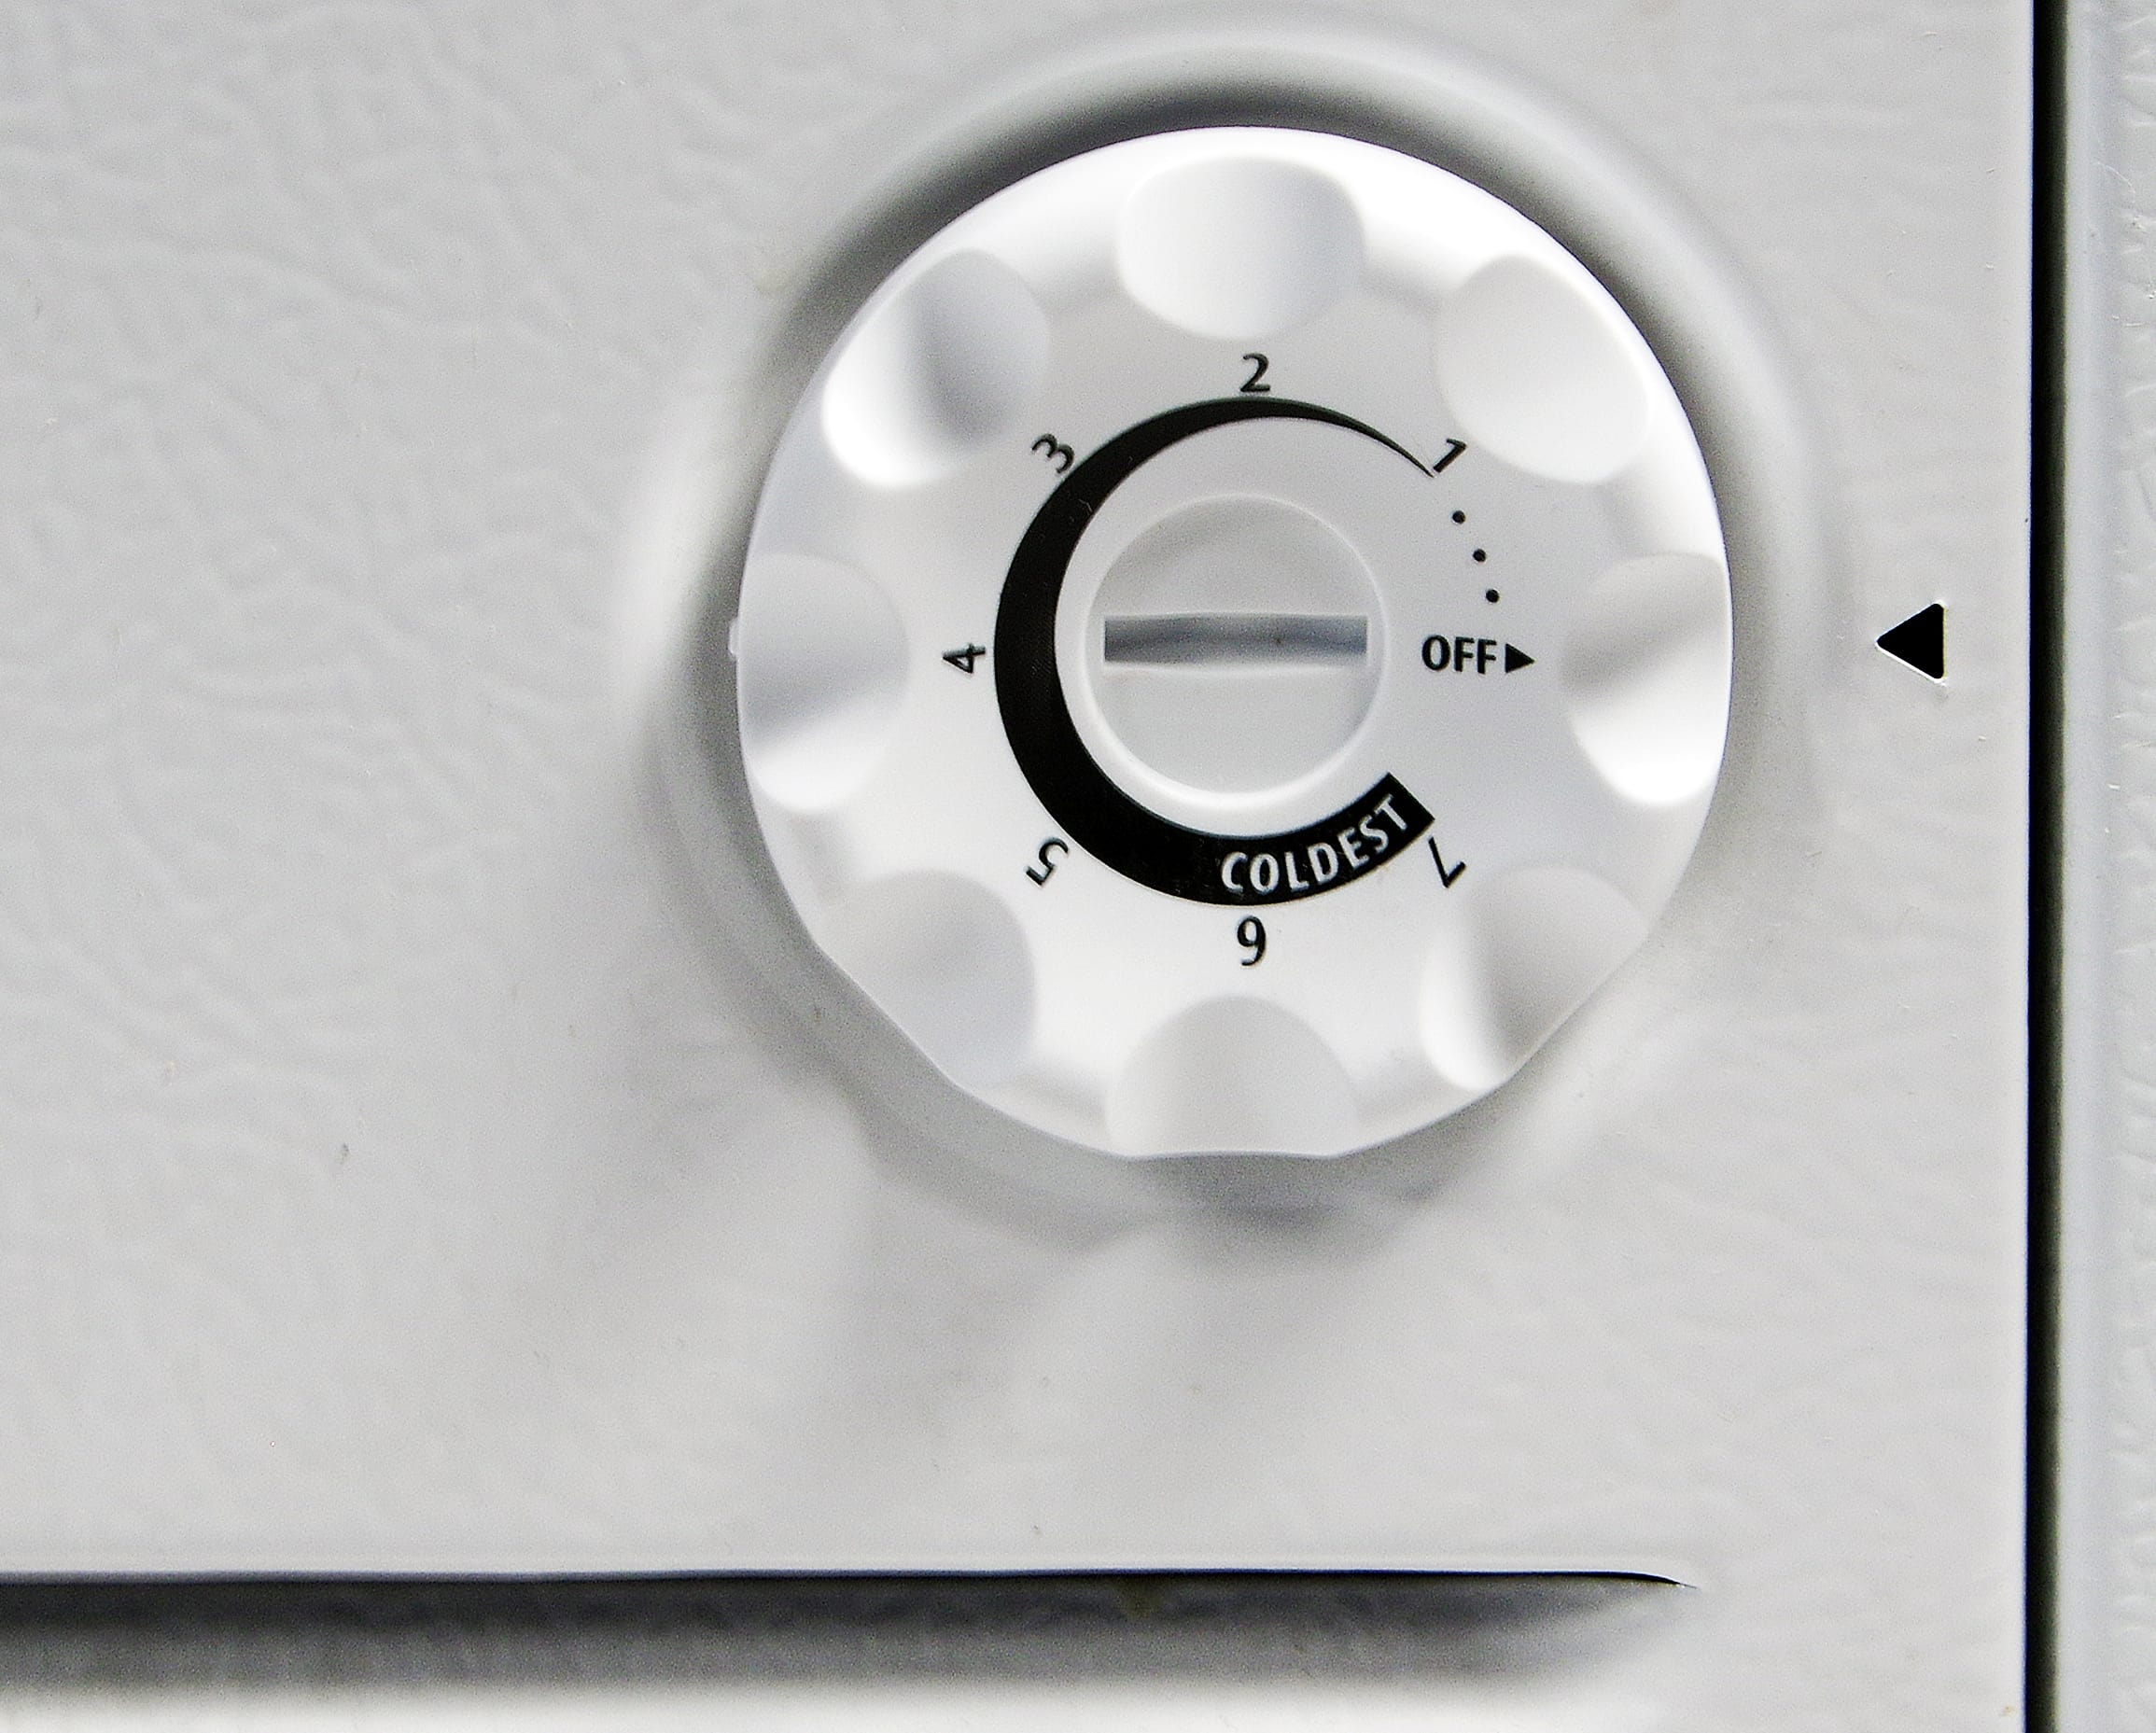 A basic knob thermostat controls internal temperatures inside the Frigidaire Gallery FGCH25M8LW.